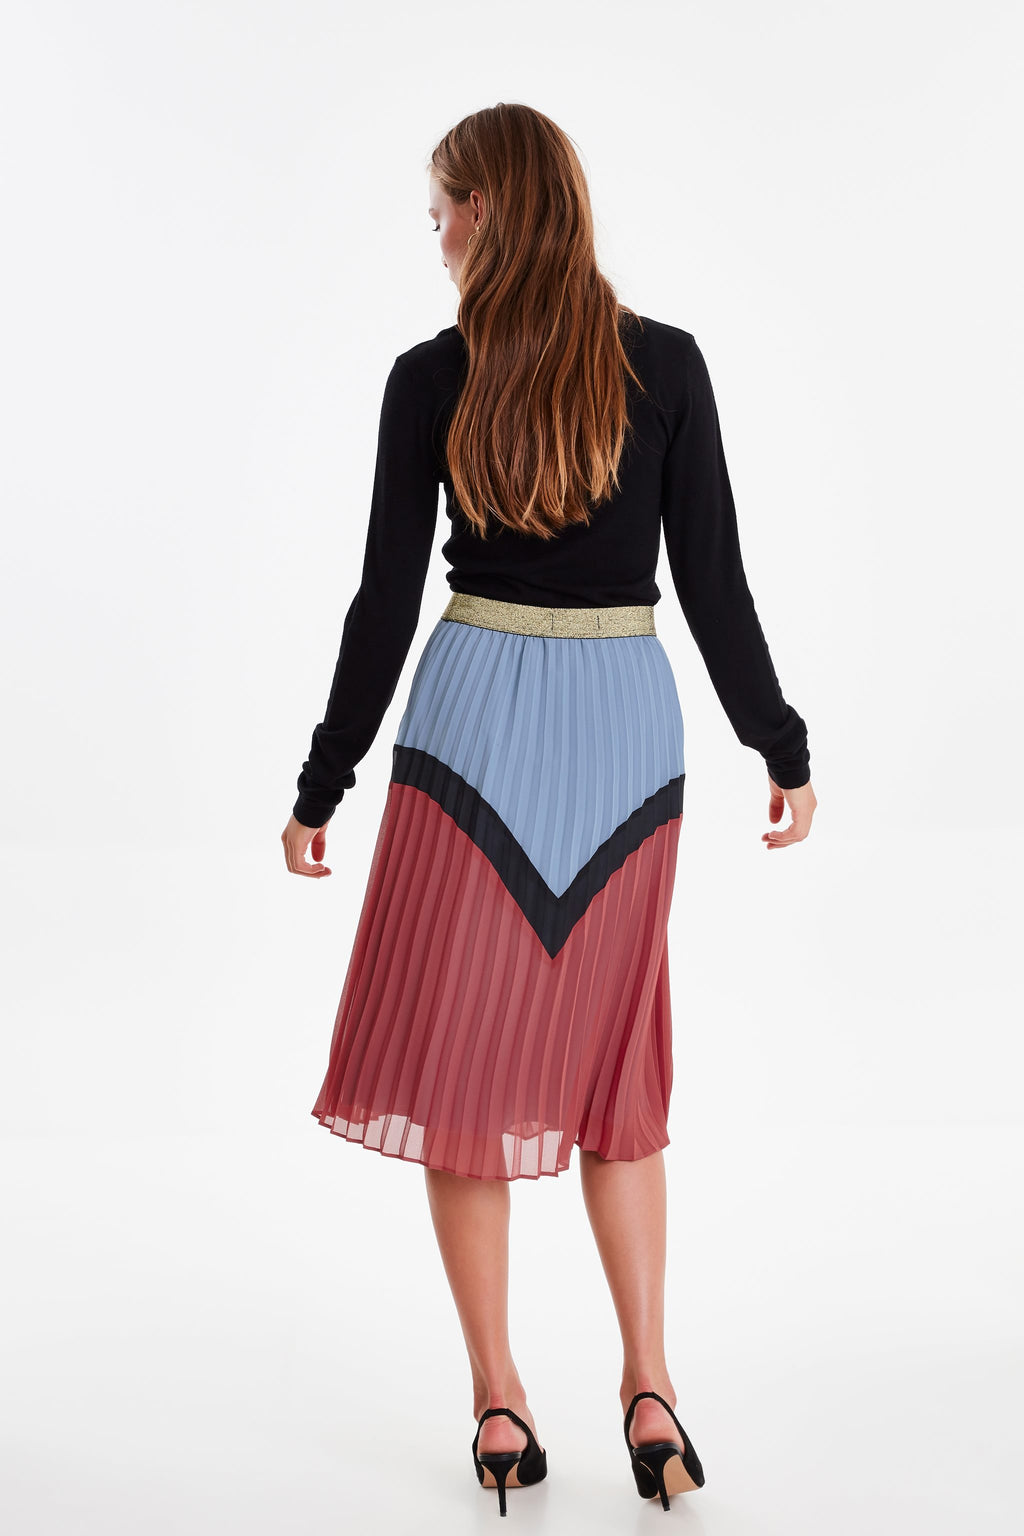 KENSLEY pleated skirt